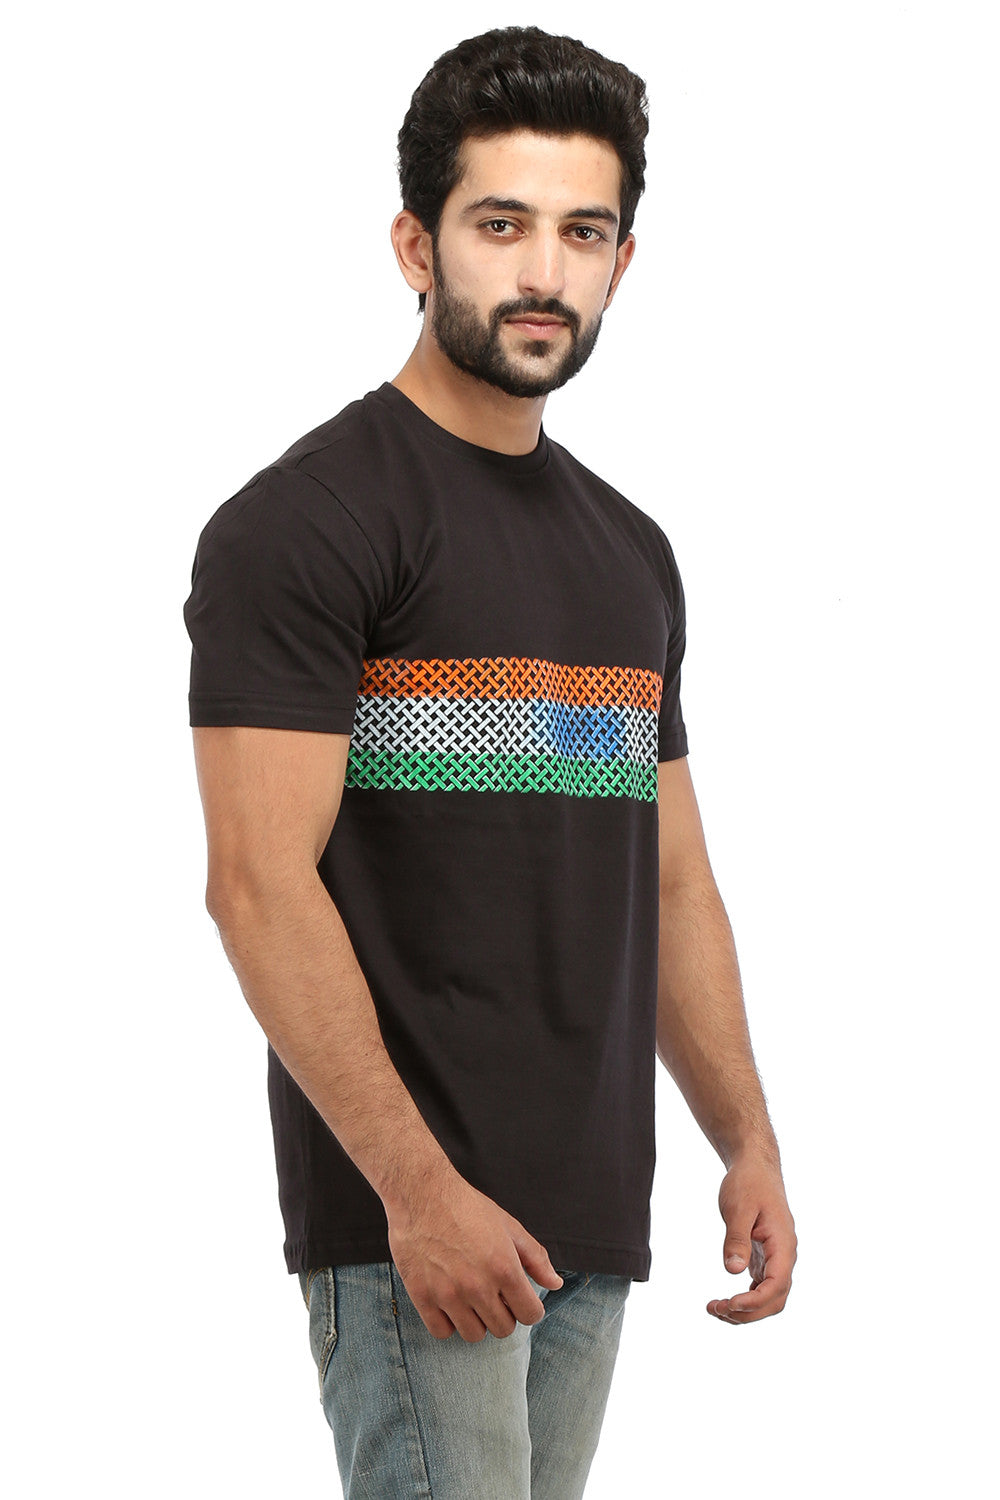 Hand-painted Trio Band Black T-shirt - Rang Rage  - 3